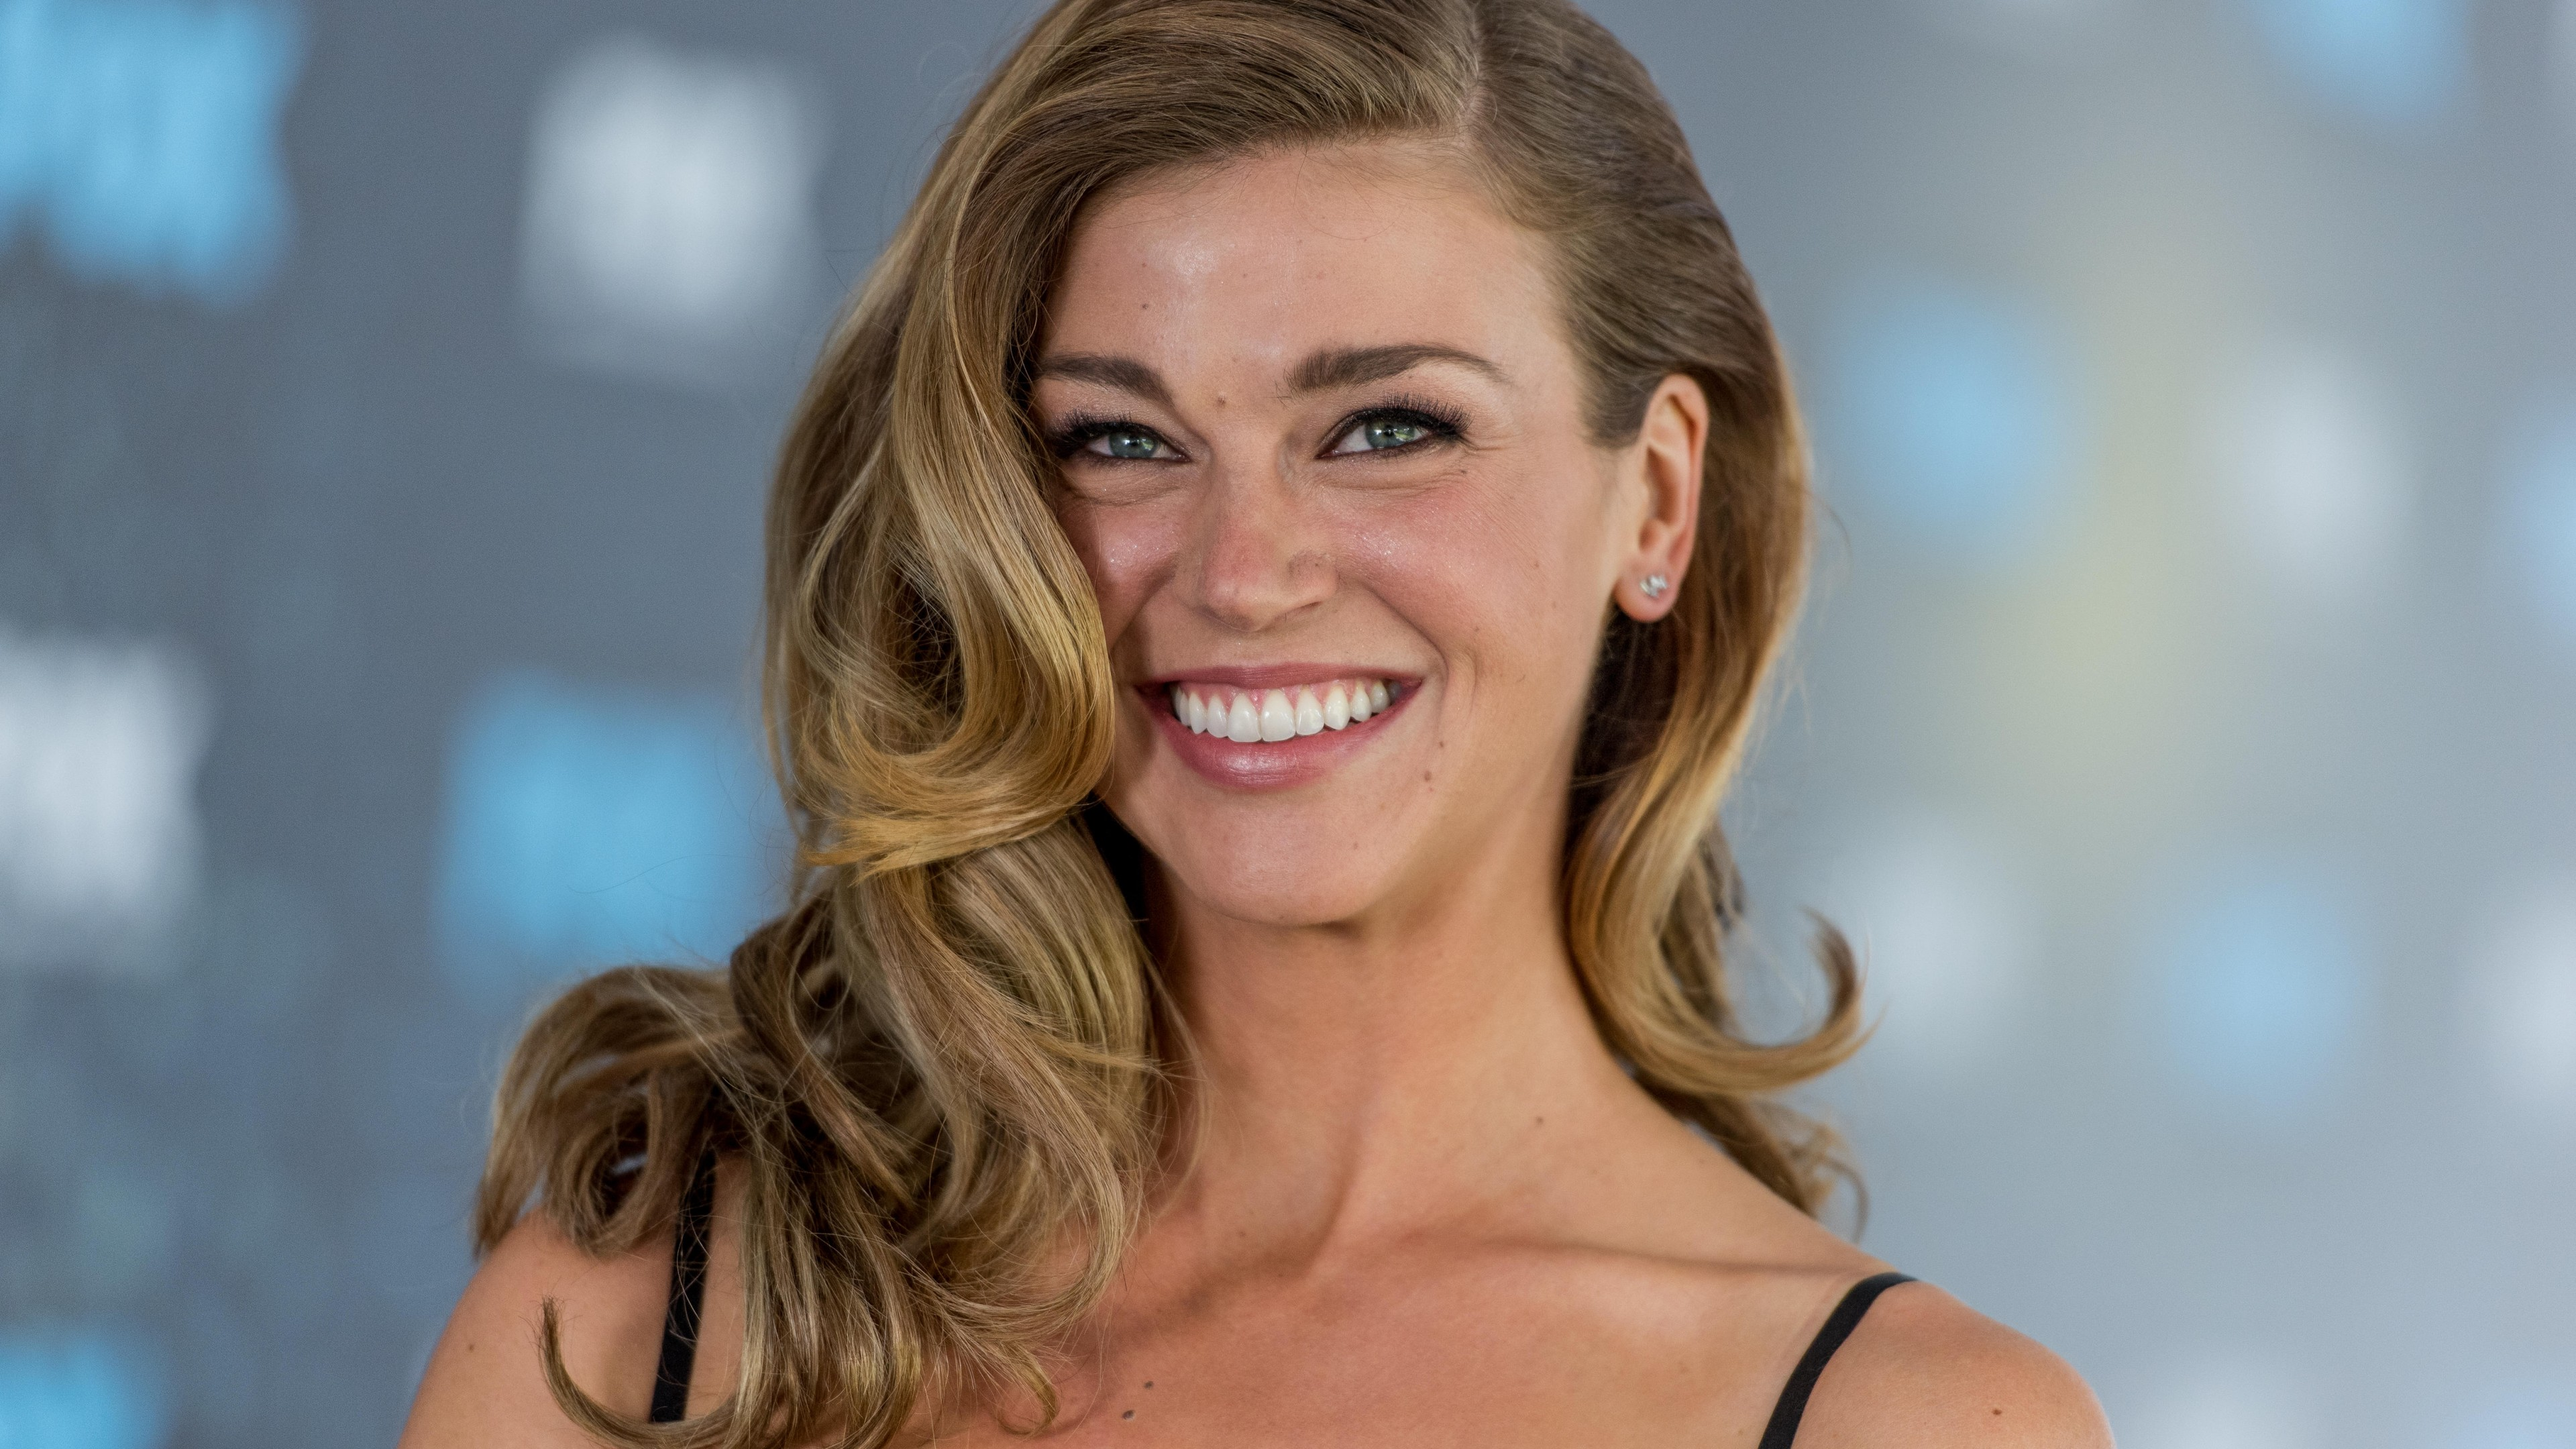 Life Quotes Wallpapers For Facebook Wallpaper Adrianne Palicki Photo 4k Celebrities 15958